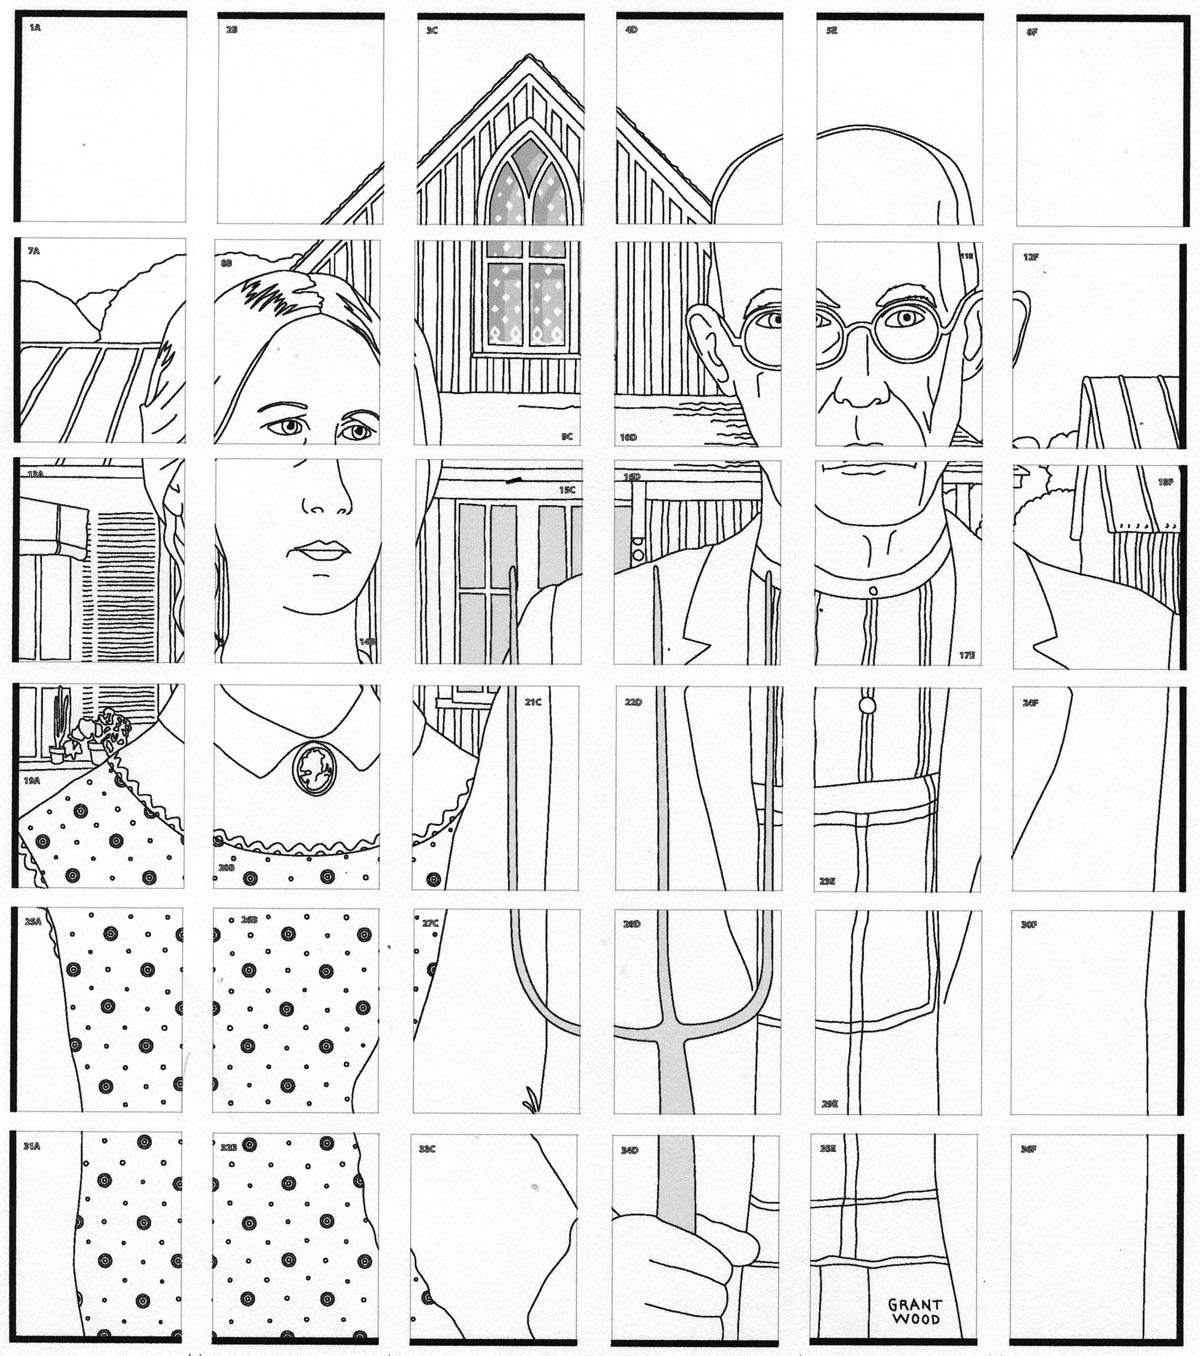 american gothic mural  u00b7 art projects for kids